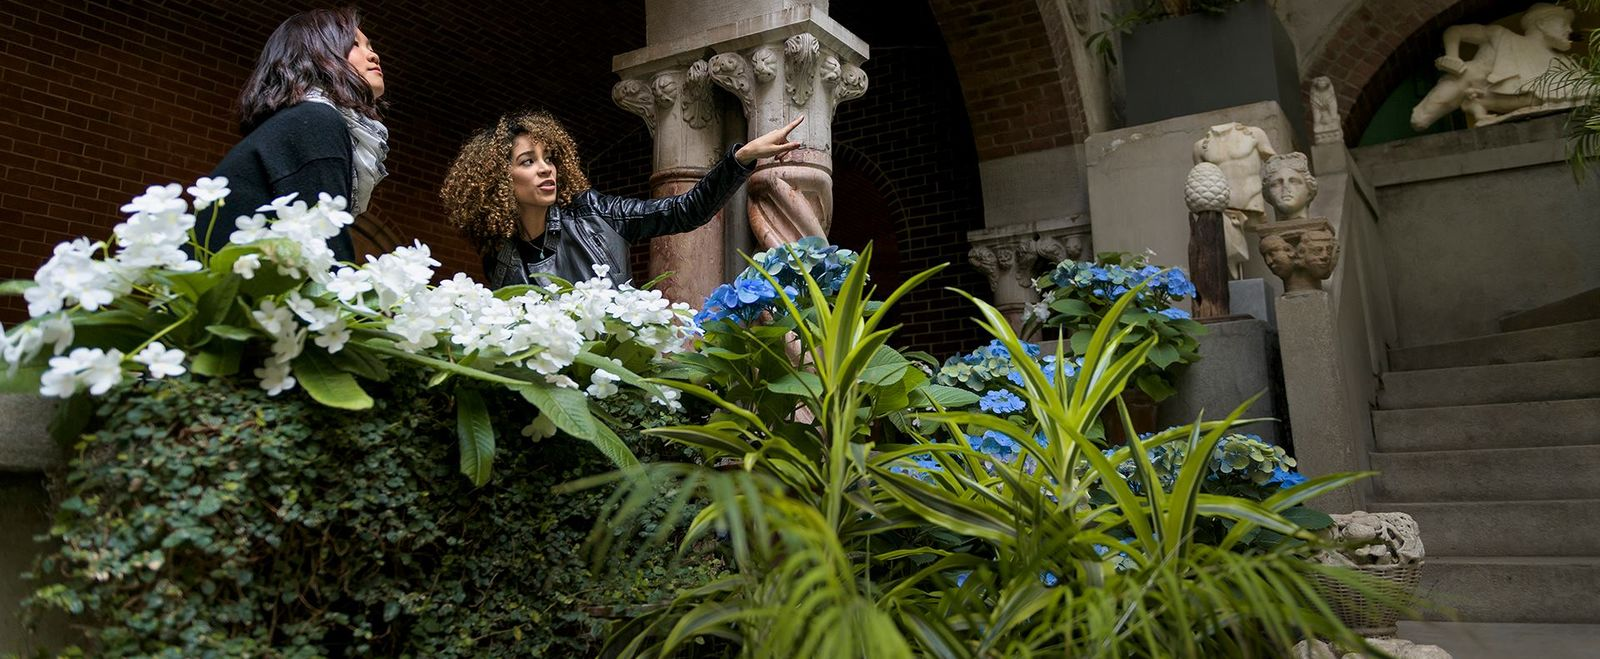 Two women point and talk at the Isabella Stewart Gardner Museum.